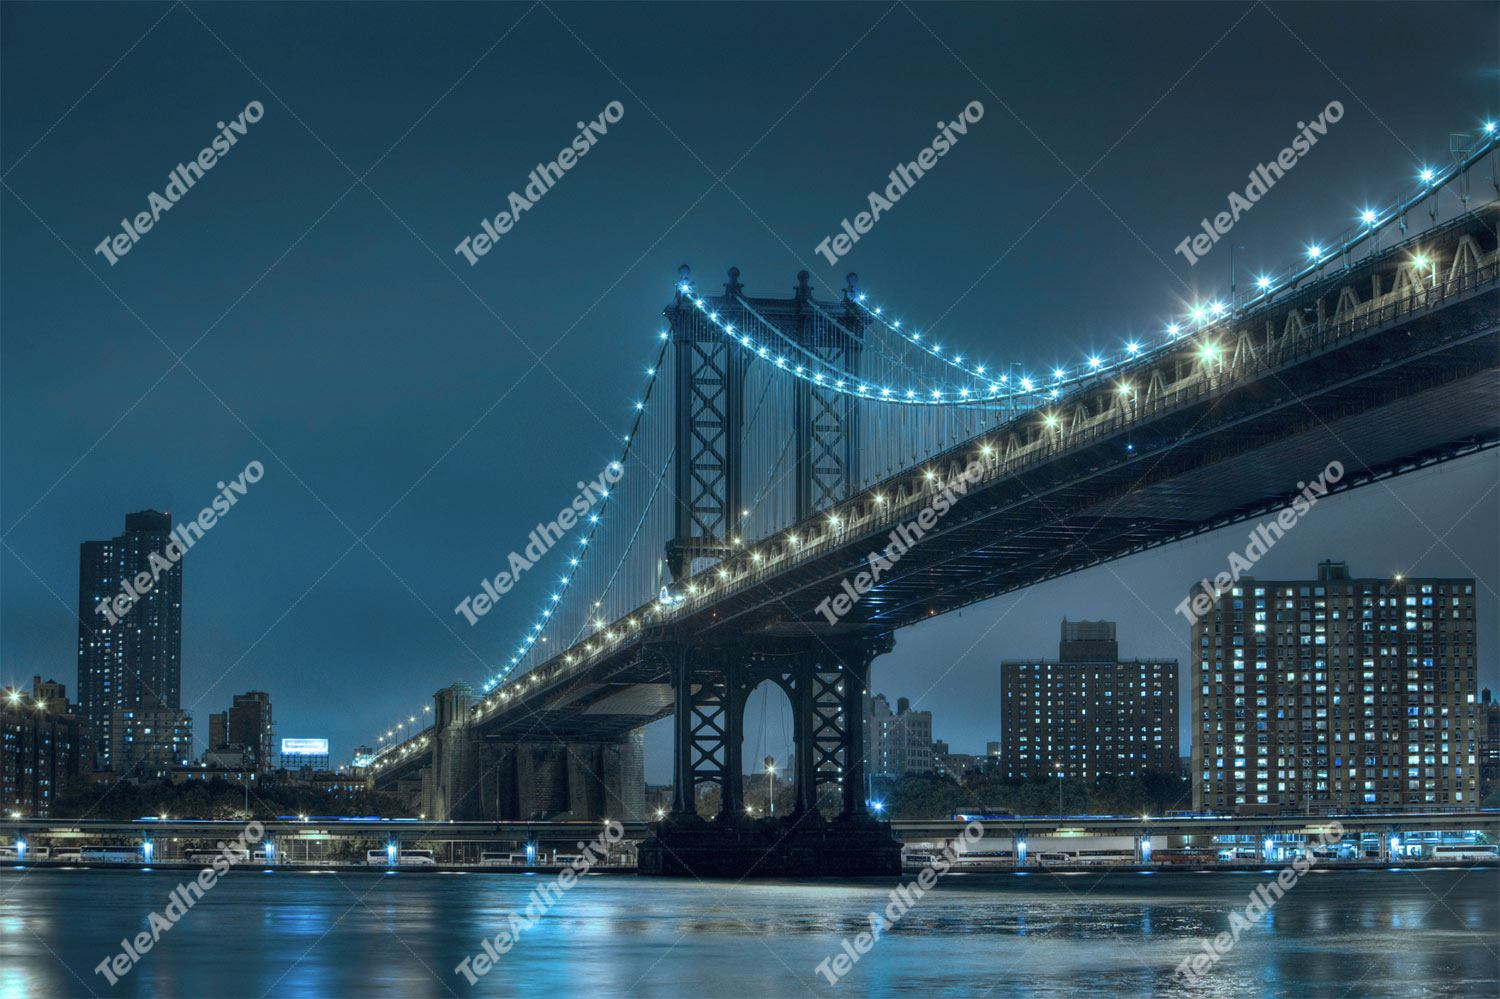 Fototapeten: Brooklyn III